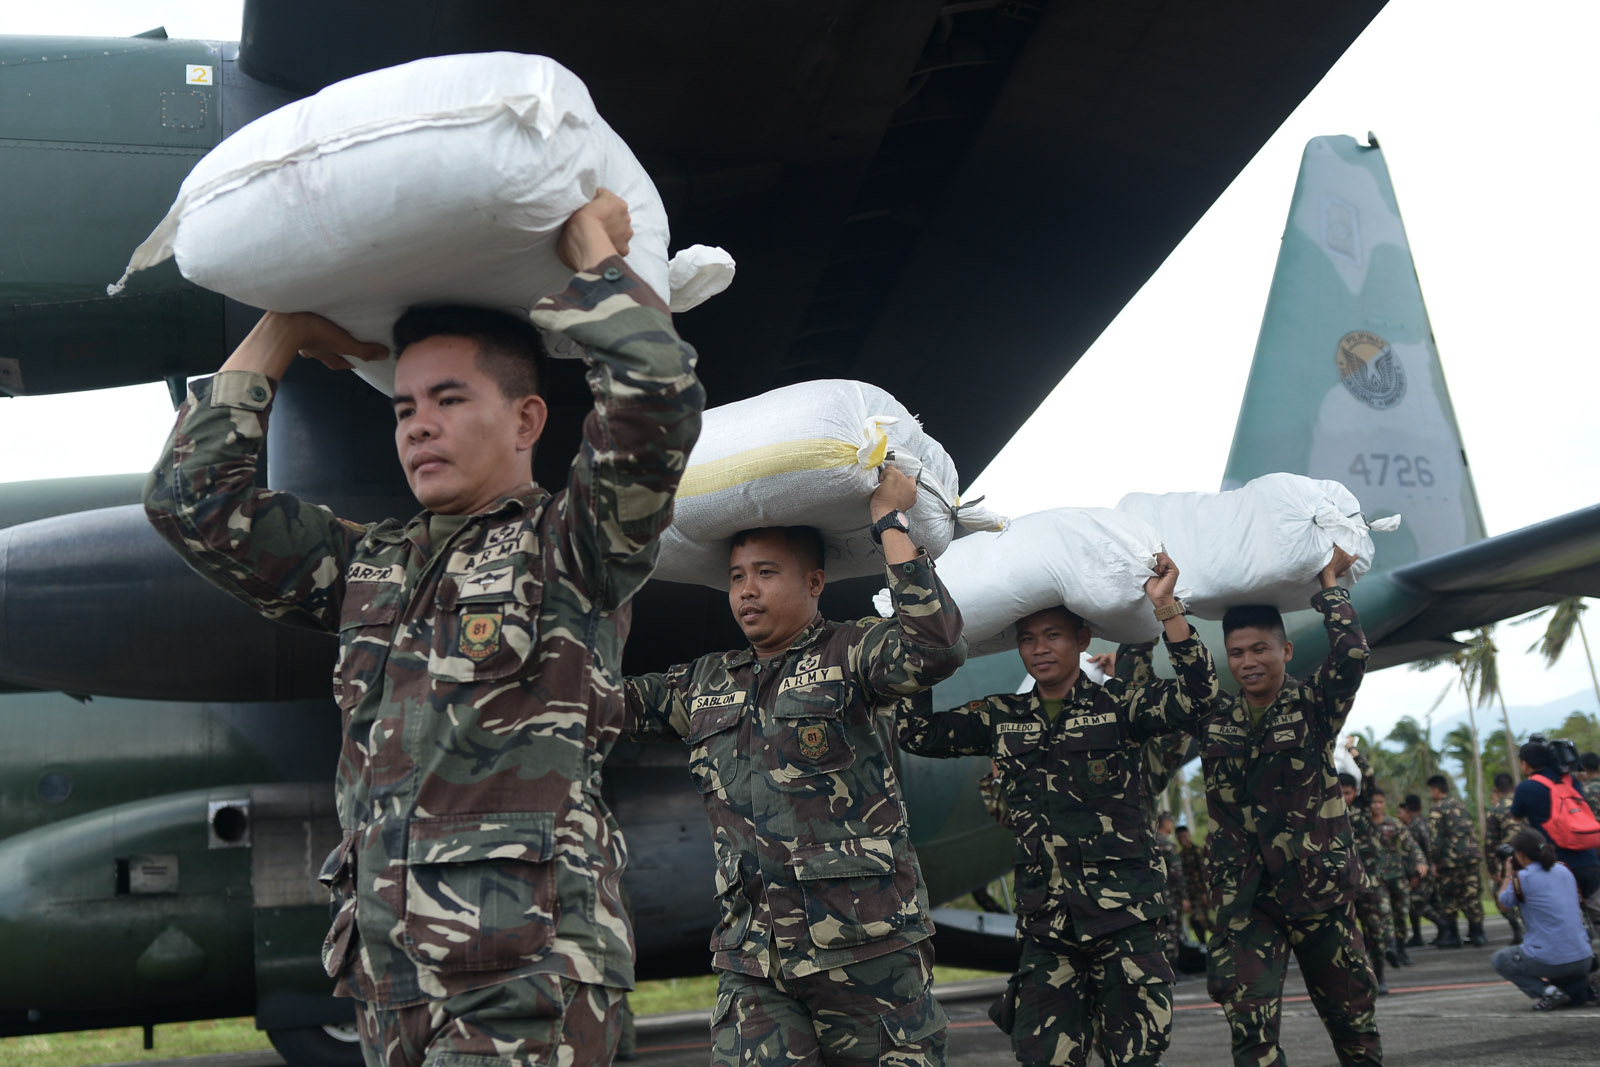 FOOD PACKS. Relief goods are unloaded from a C-130 plane in Baler, Aurora. Photo by Jansen Romero/Rappler